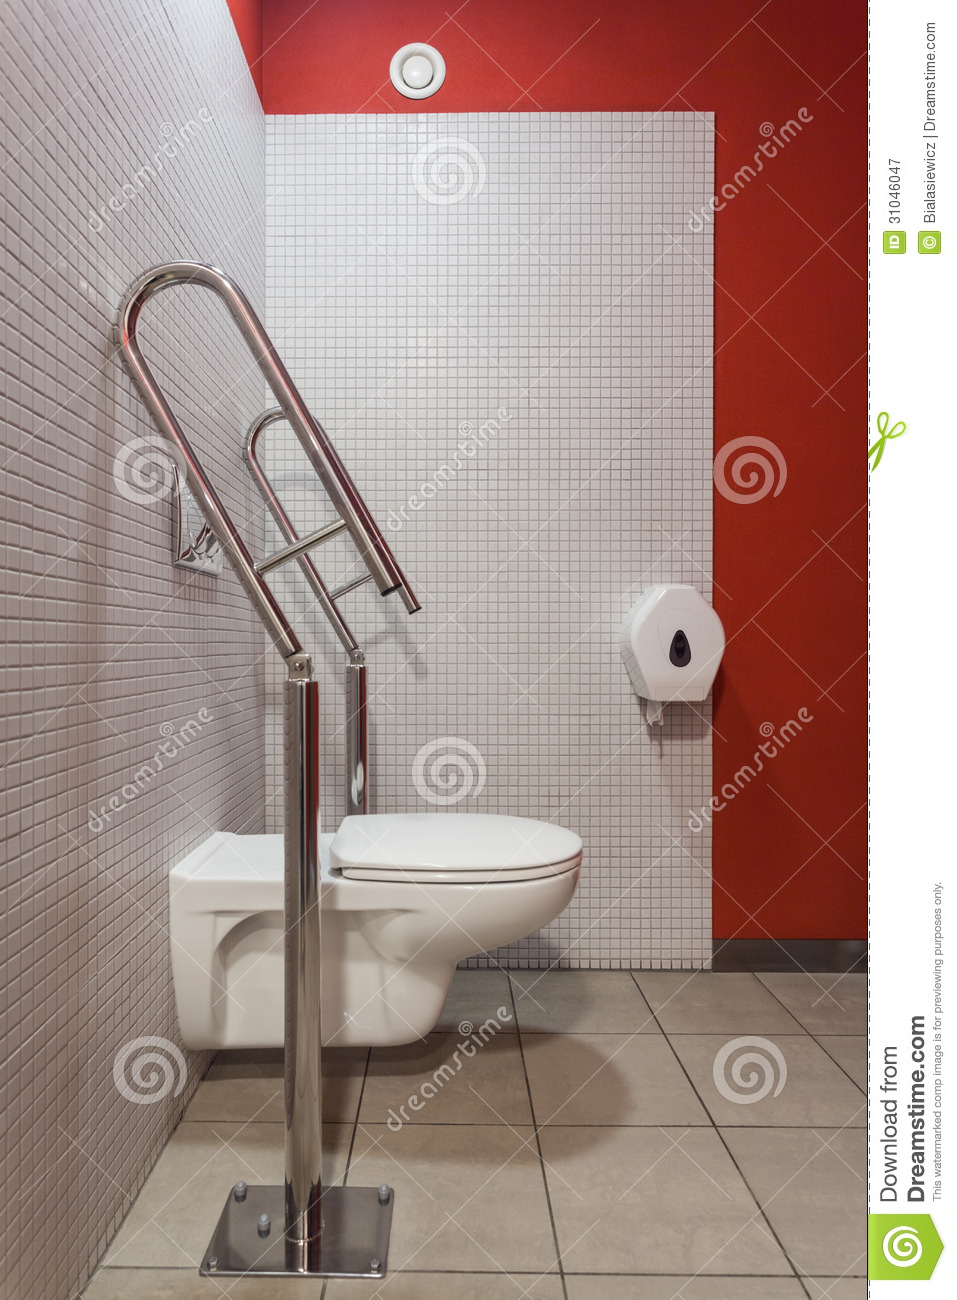 Toilet Royalty Free Stock Photography Image 31046047